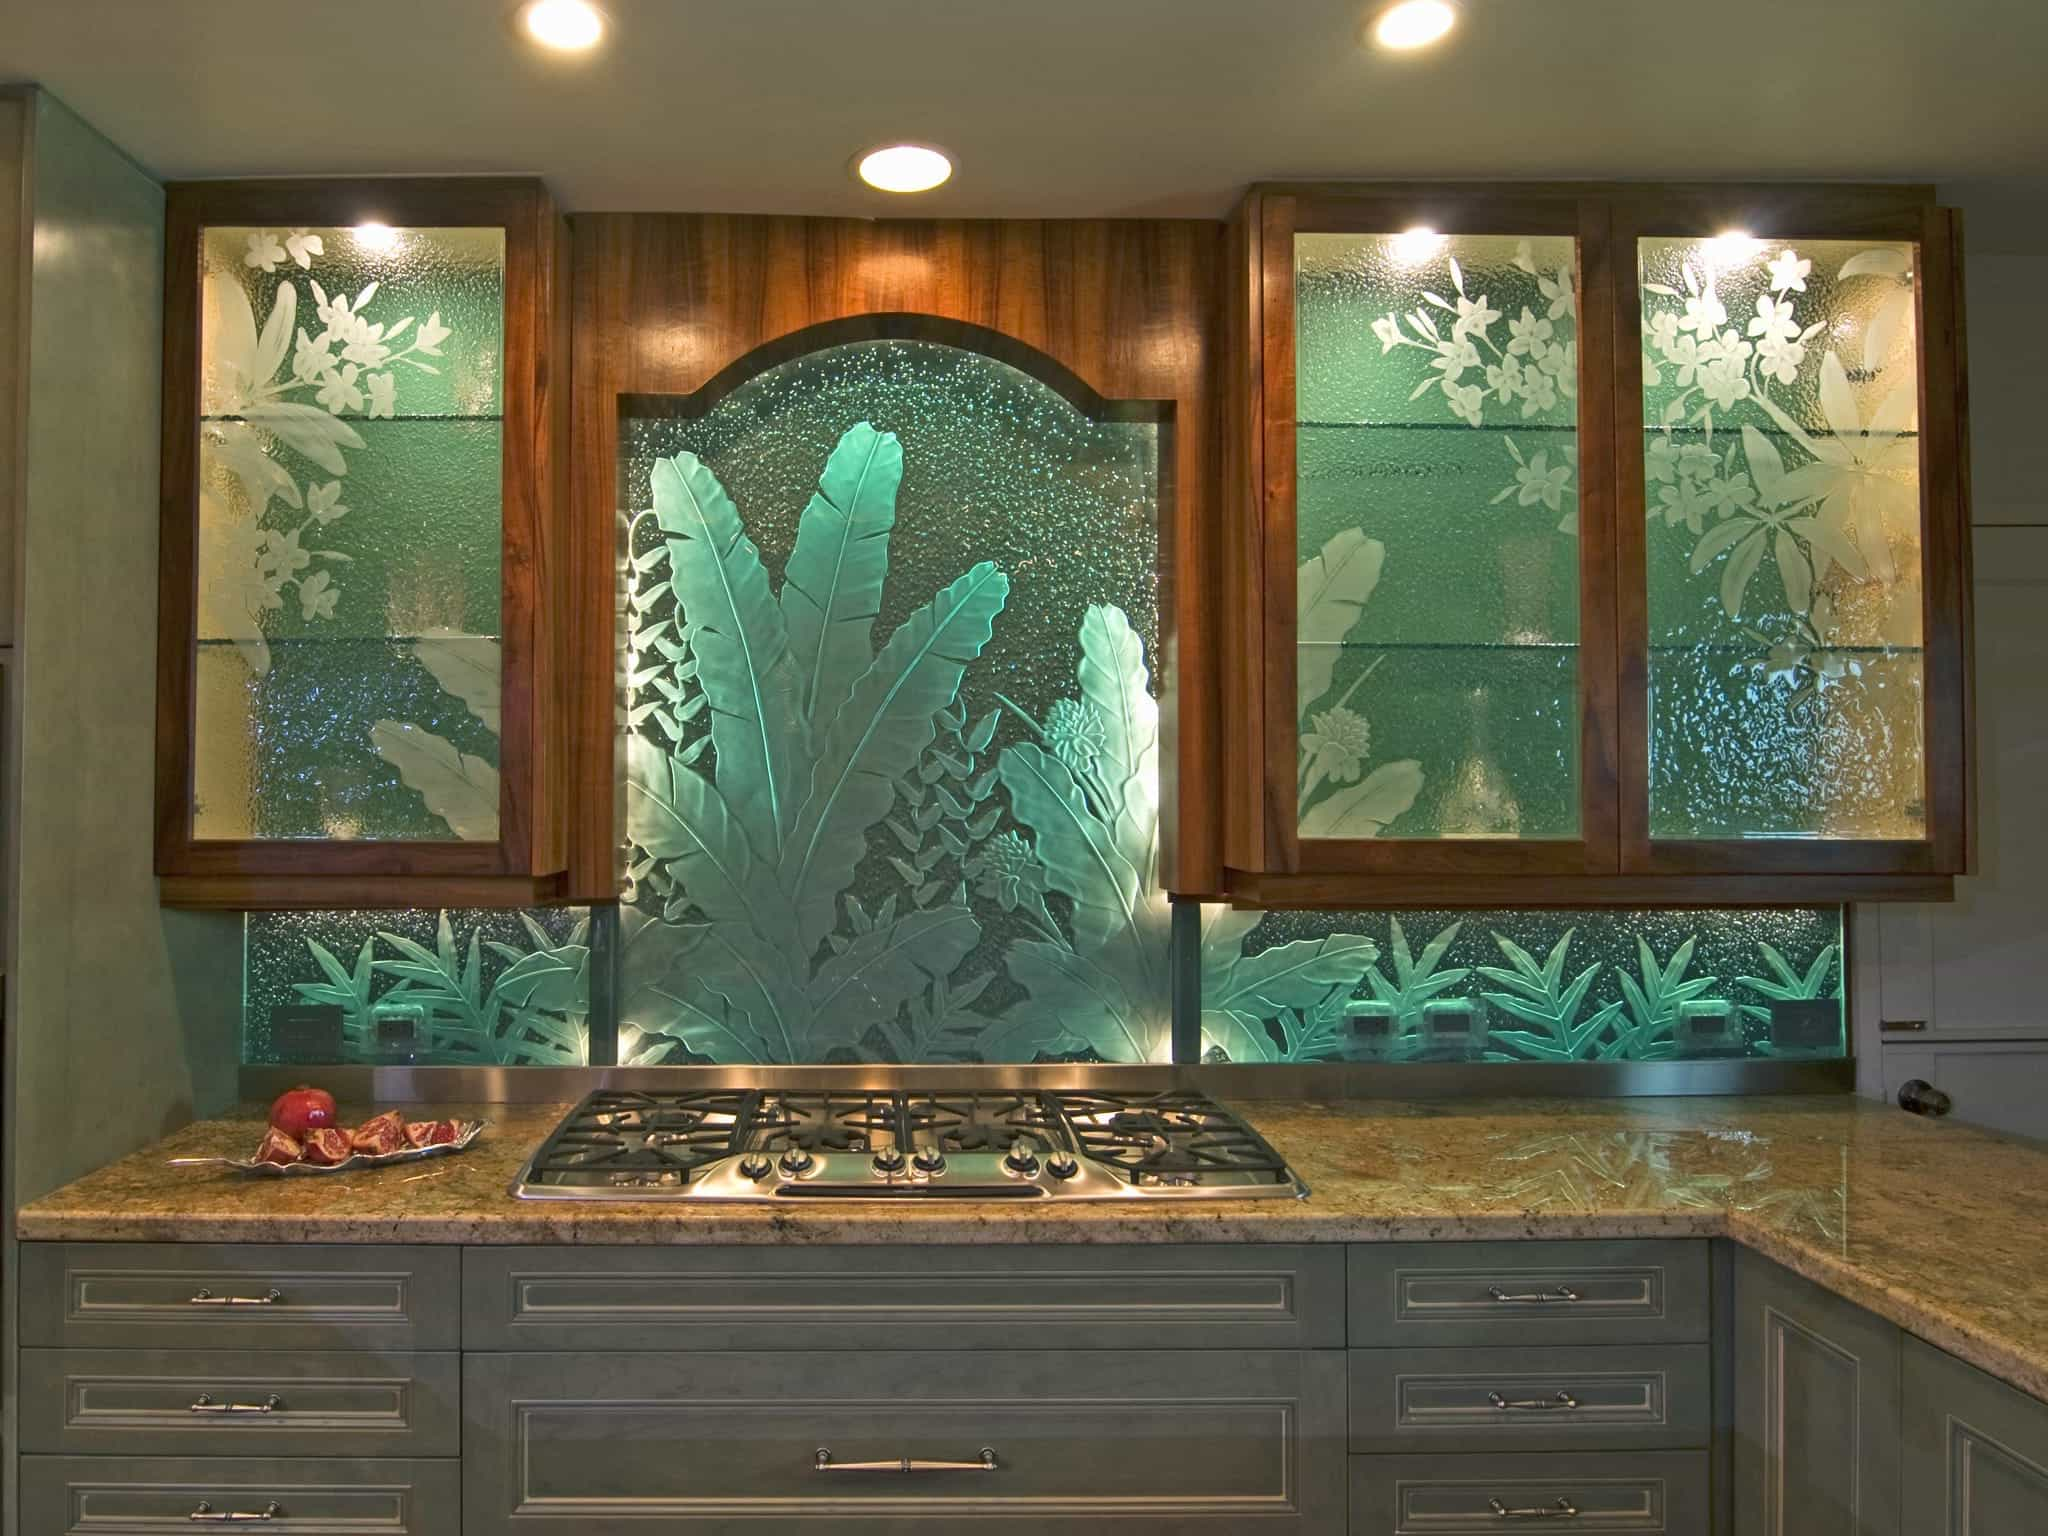 Floral Etched Glass Kitchen Cabinet Doors (View 3 of 7)